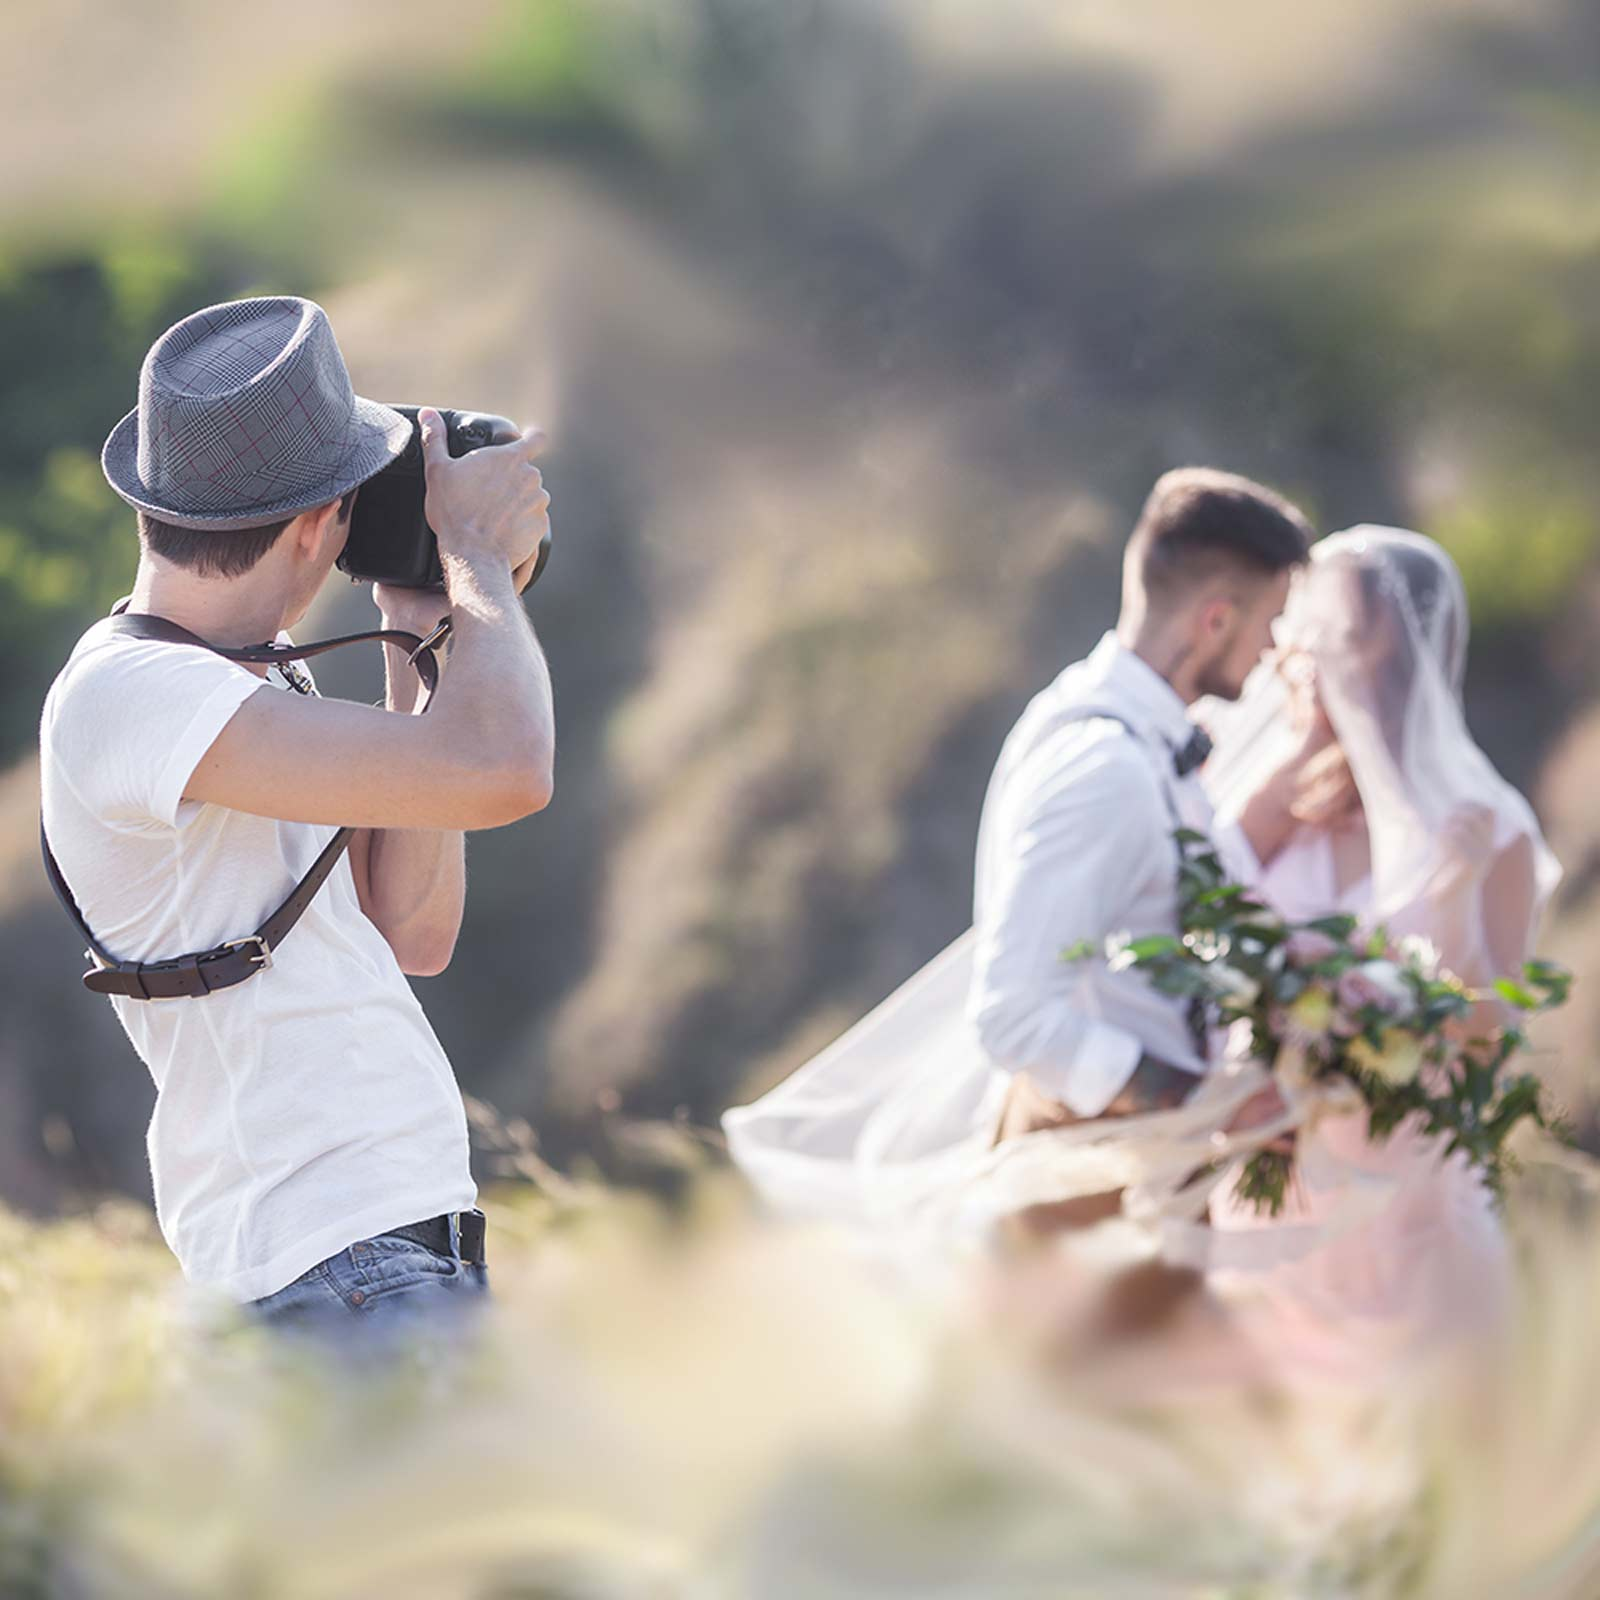 photographer videographer weddings